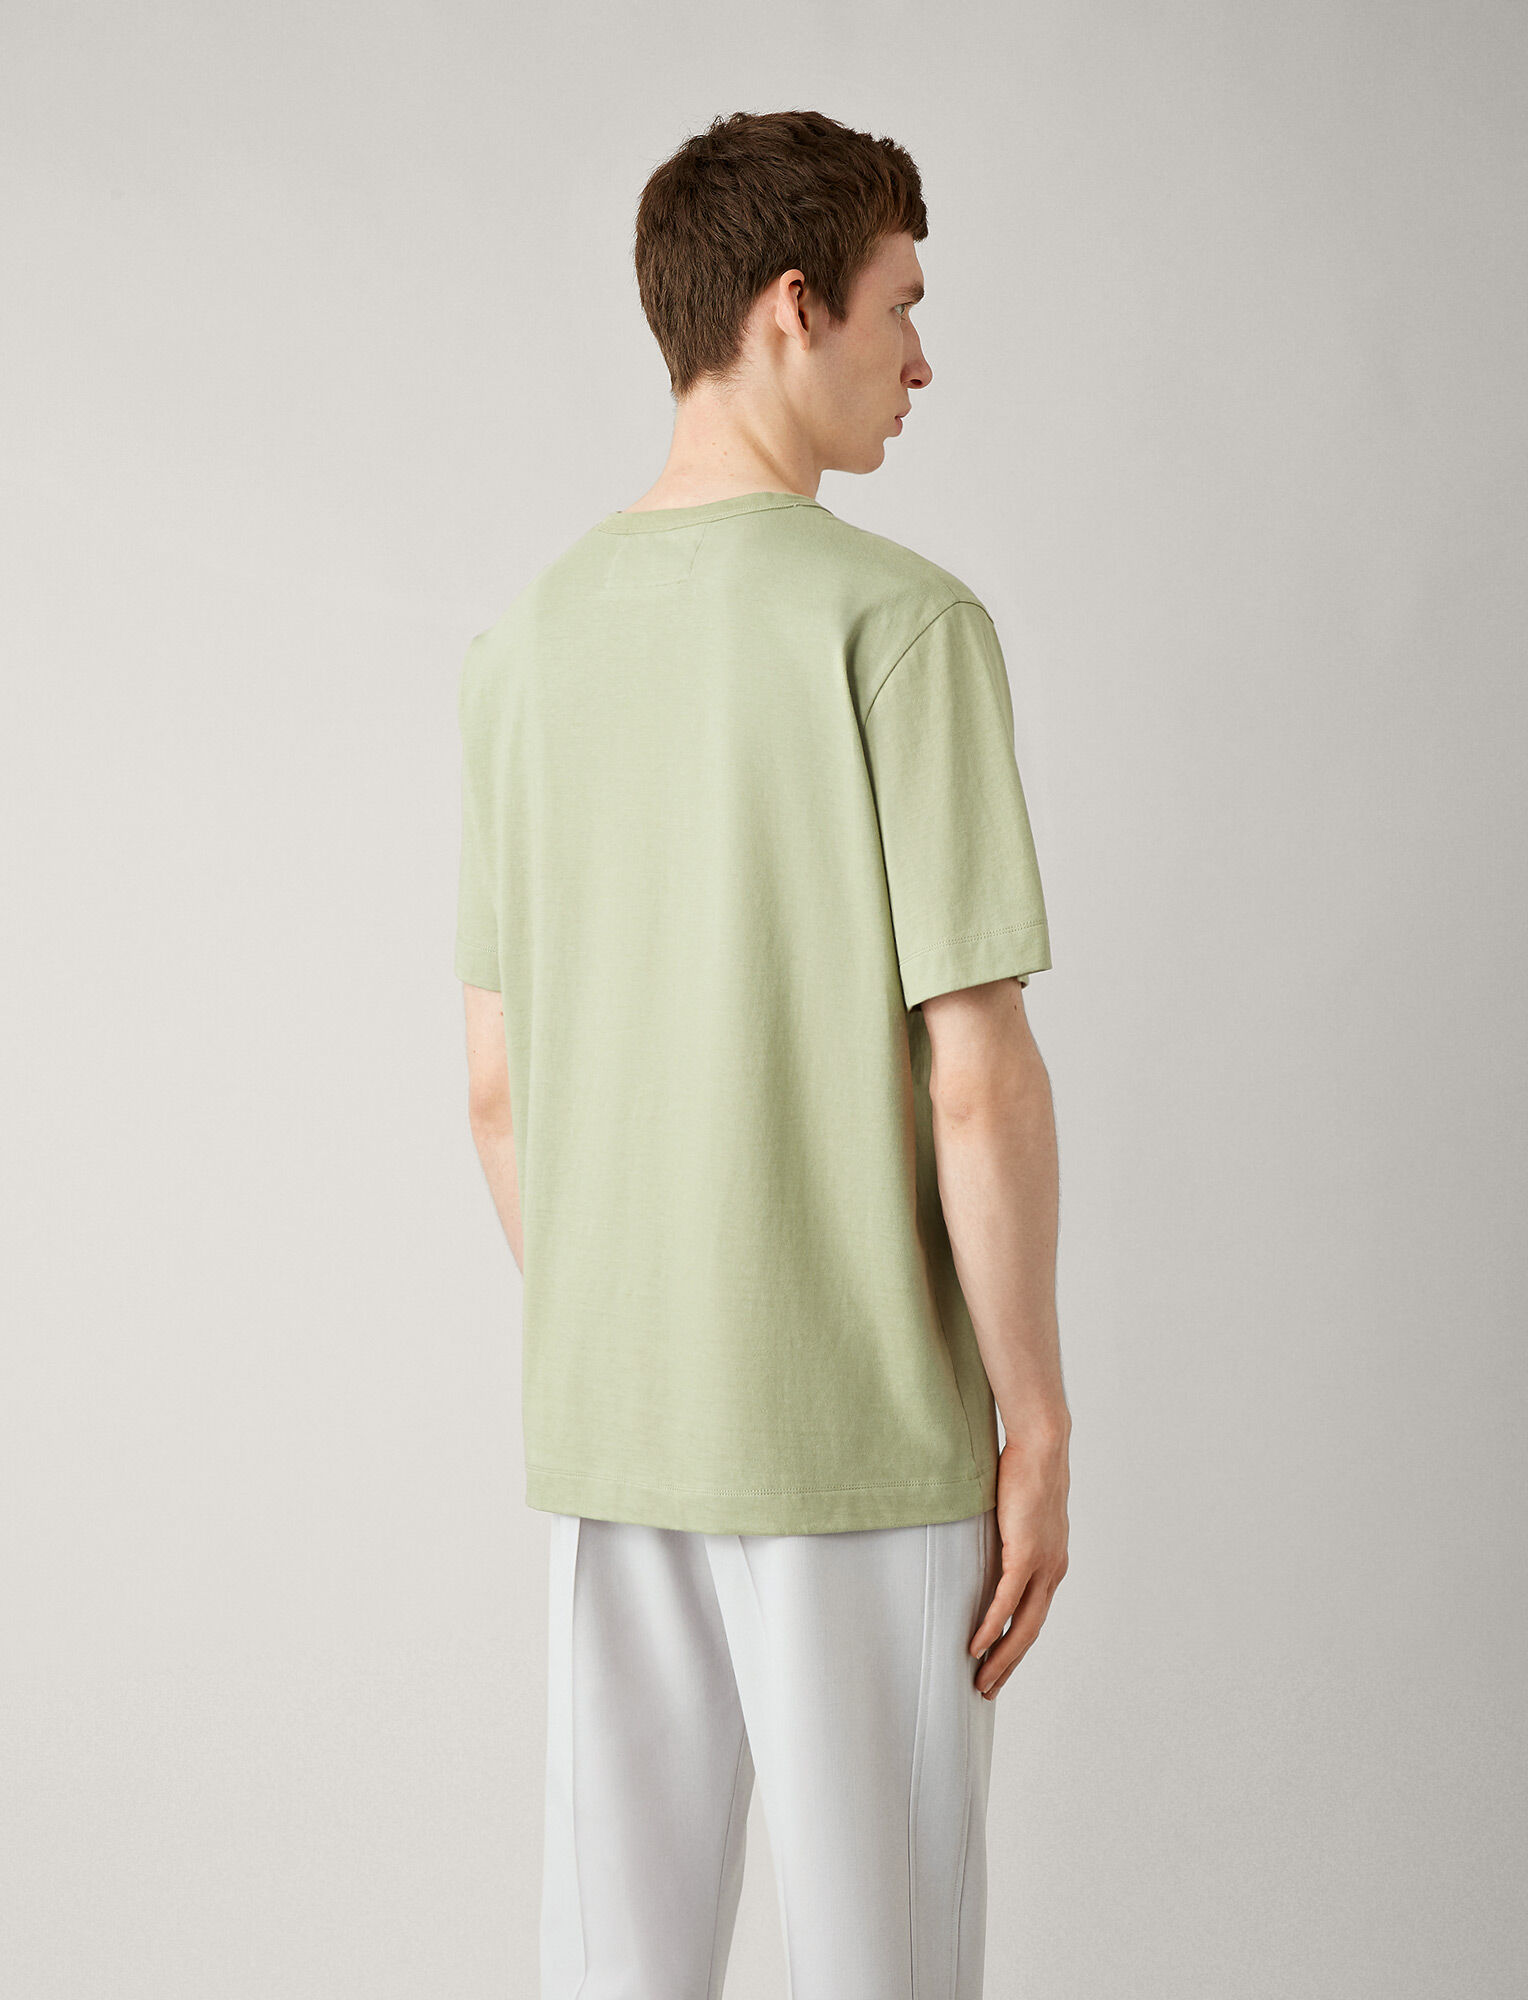 Joseph, Perfect Tee, in KHAKI